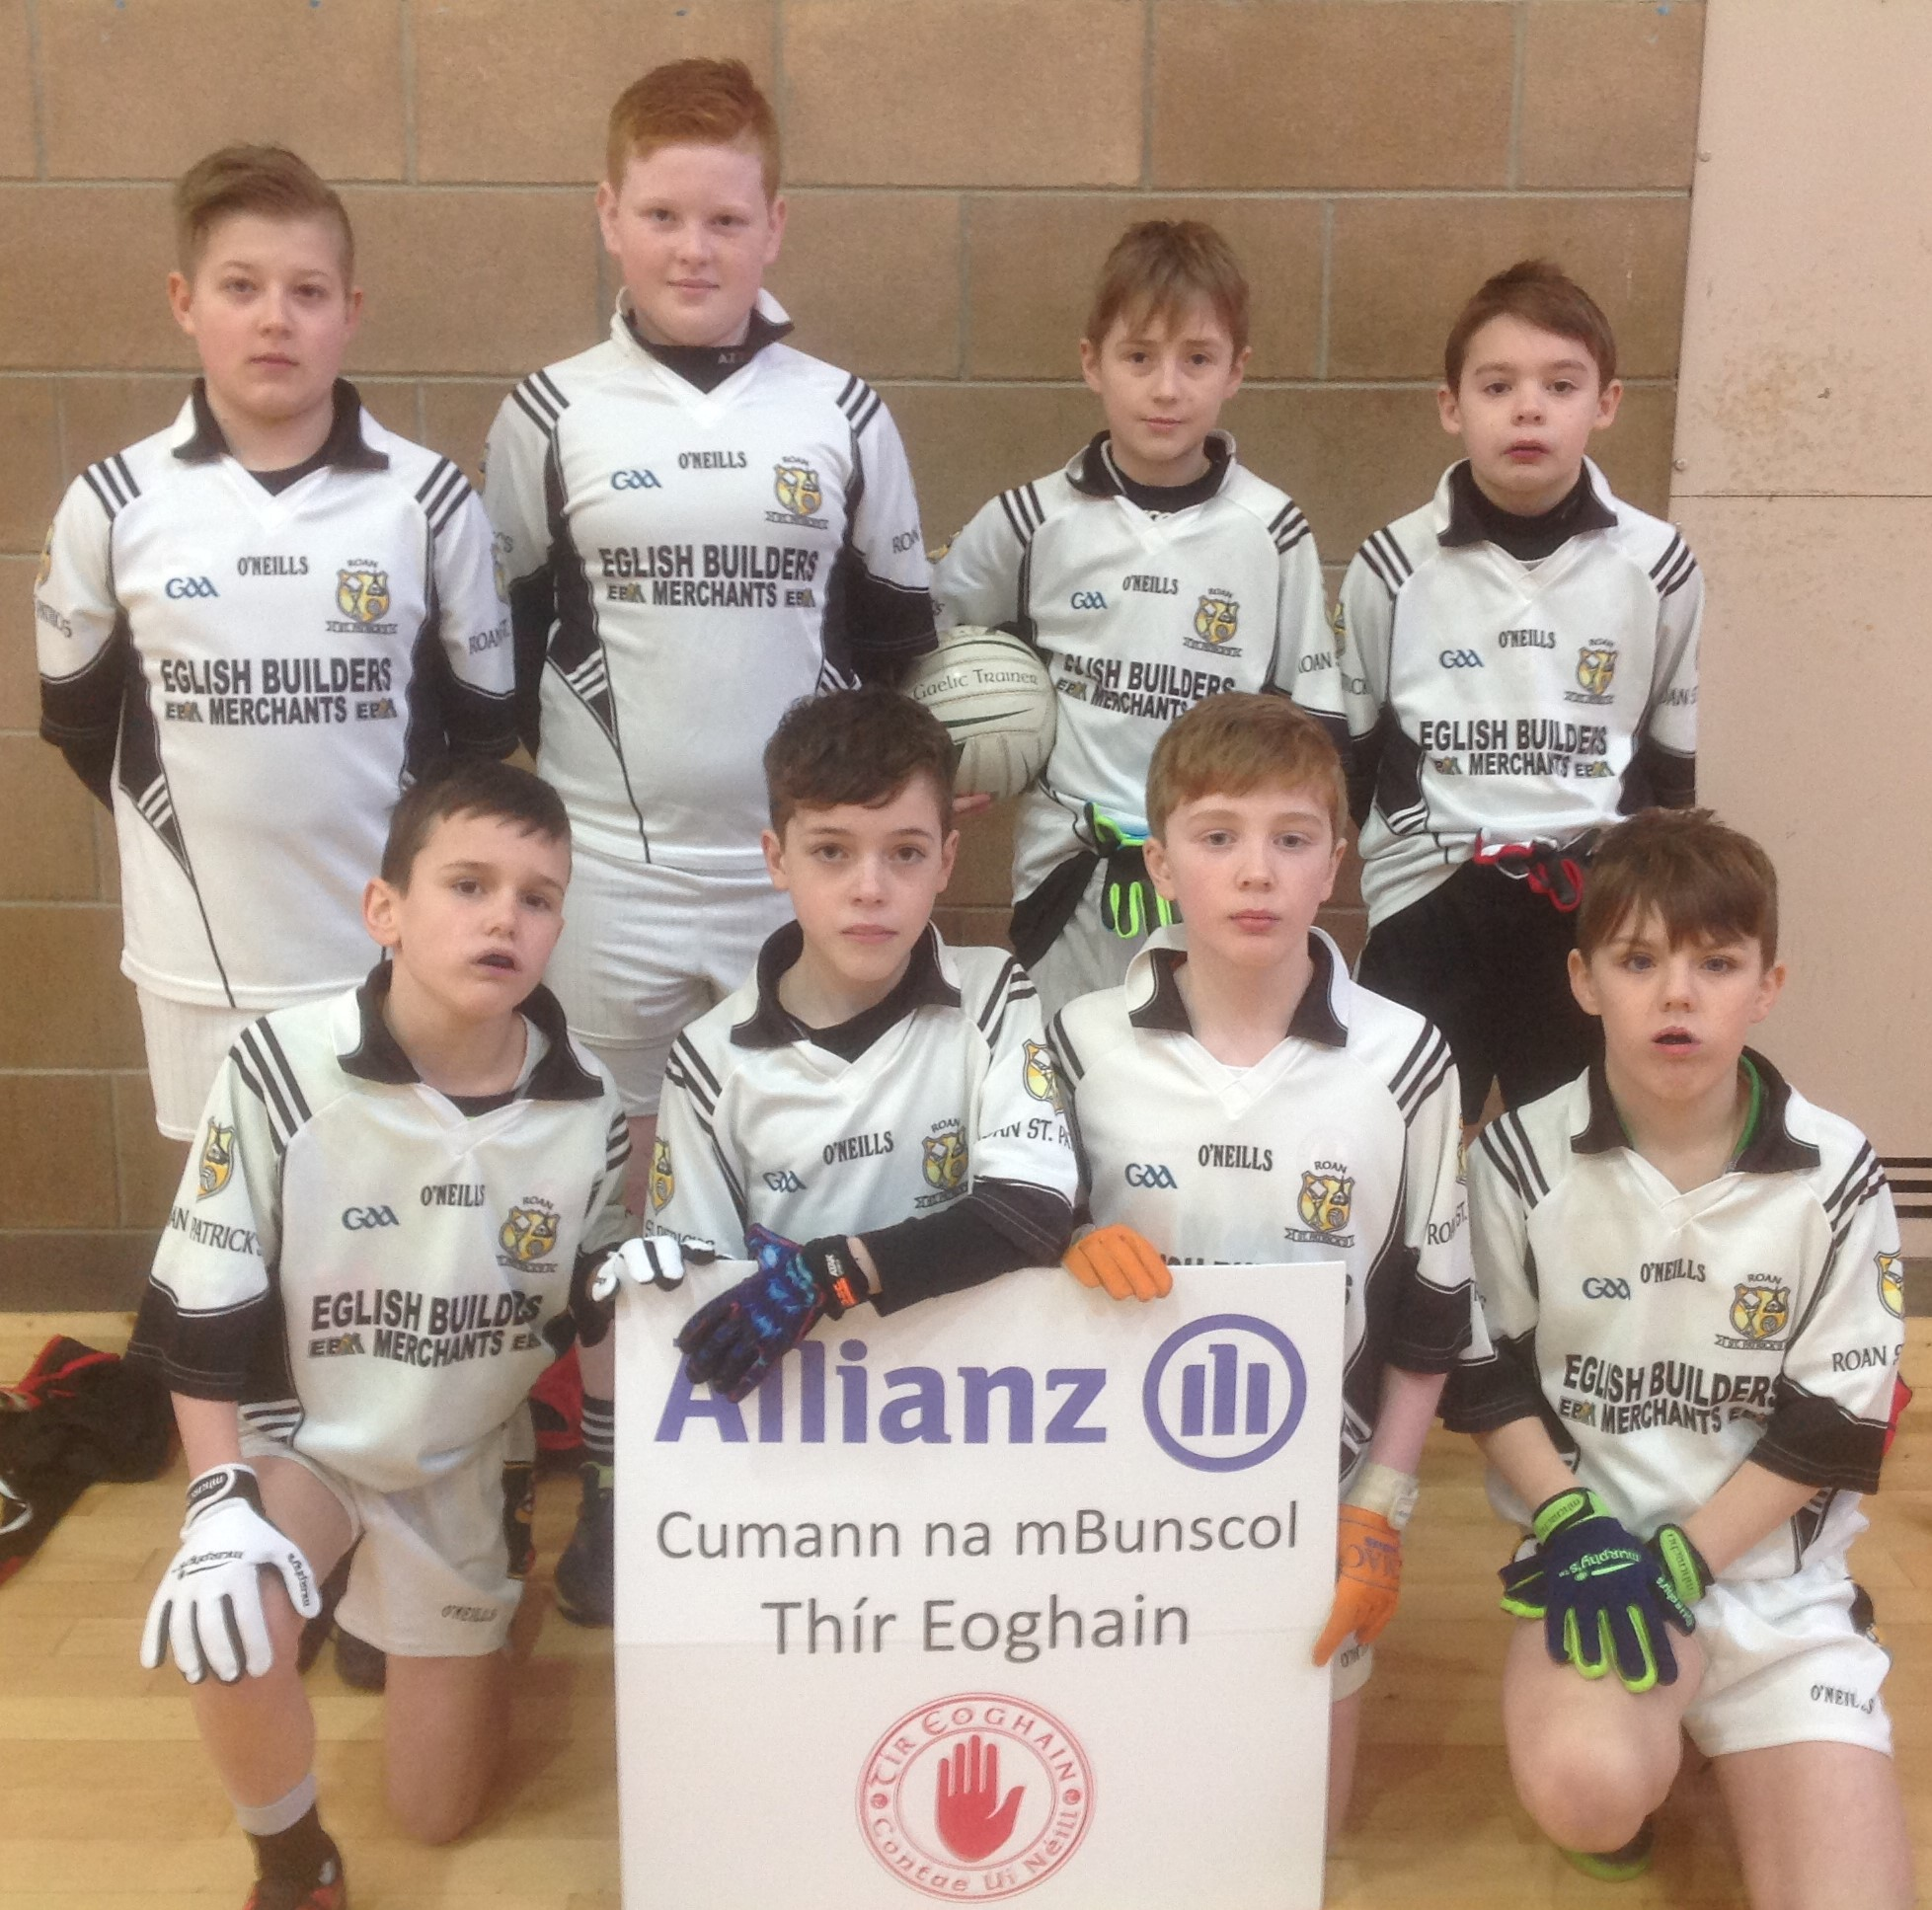 ALLIANZ CUMANN Na mBUNSCOL – BOYS' INDOOR FOOTBALL HEAT 5: CLONOE